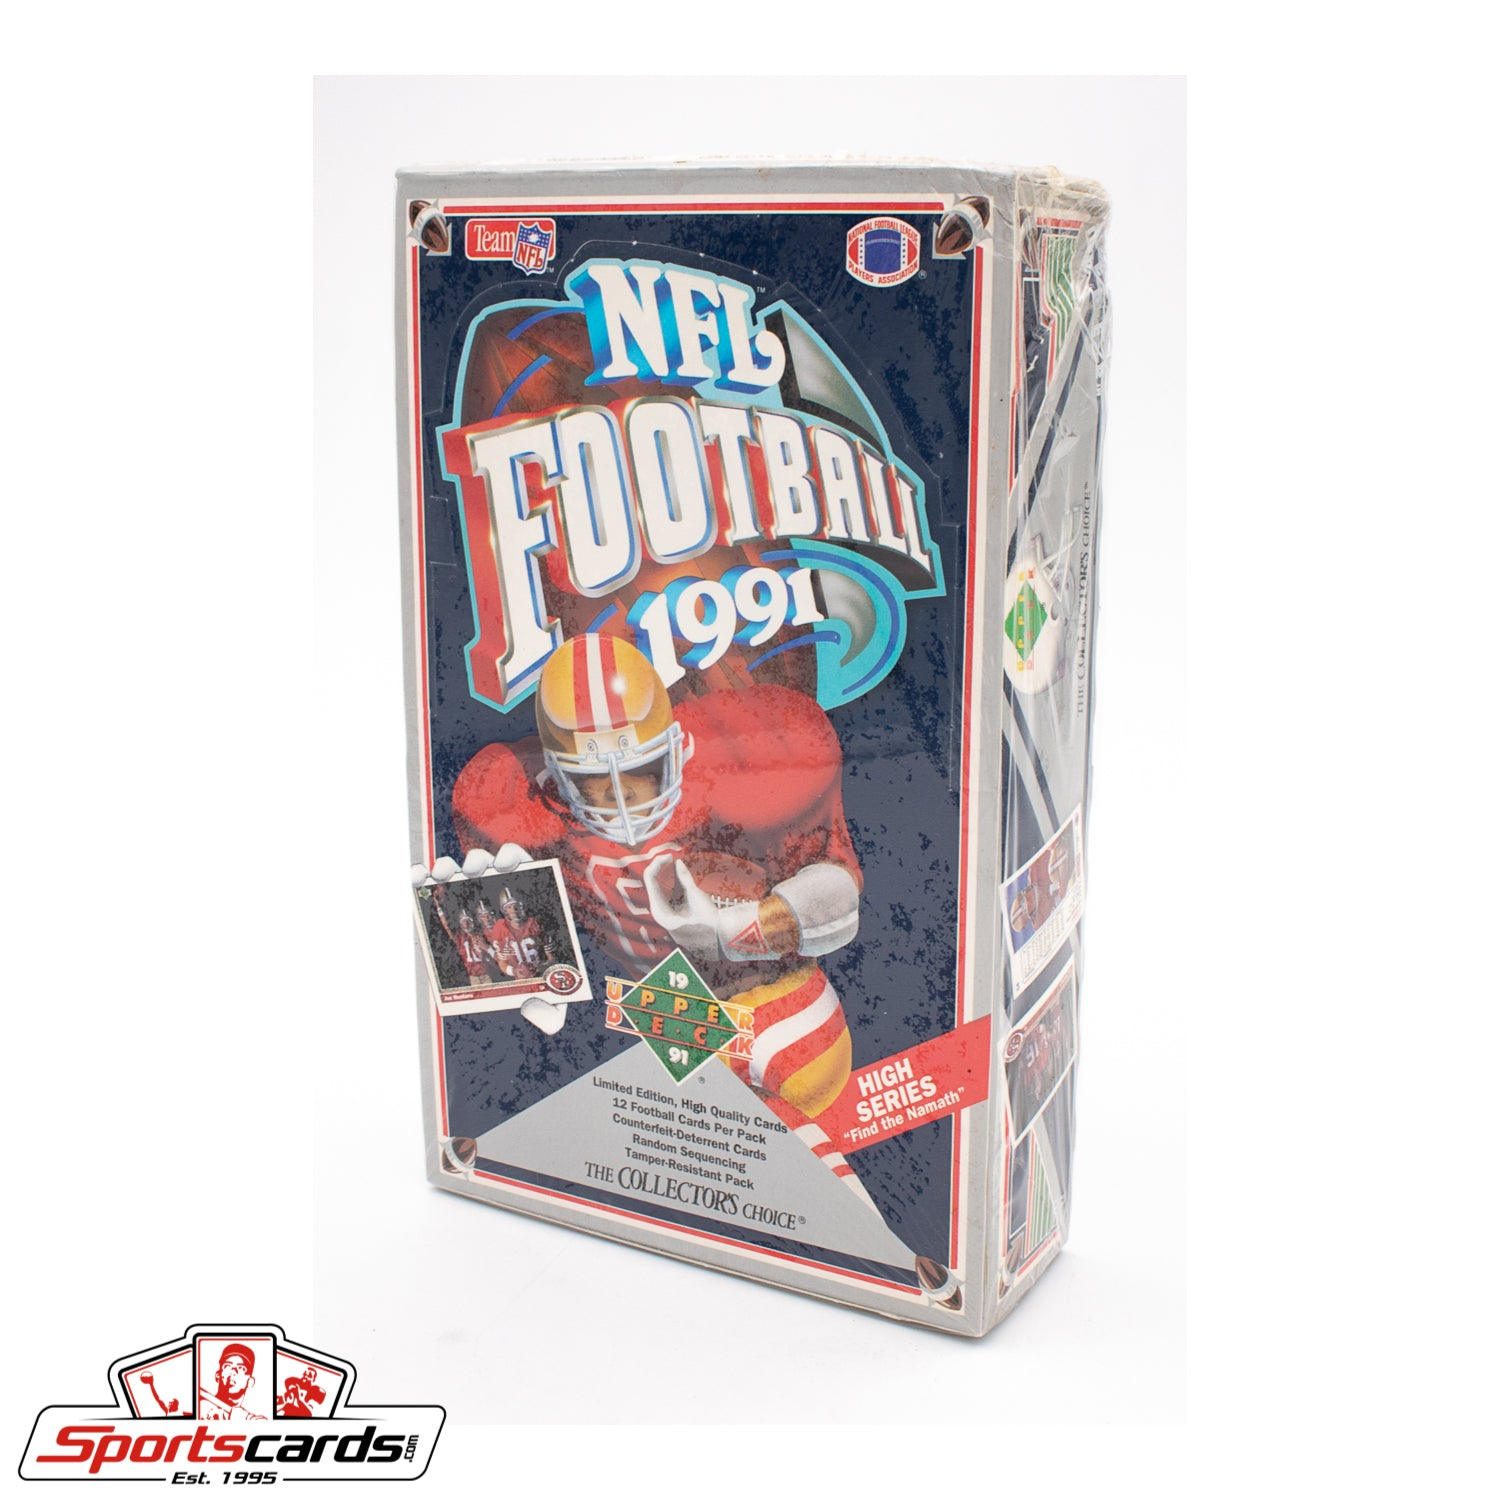 1991 Upper Deck Football Factory Sealed High Series Box - Find the Namath Auto!